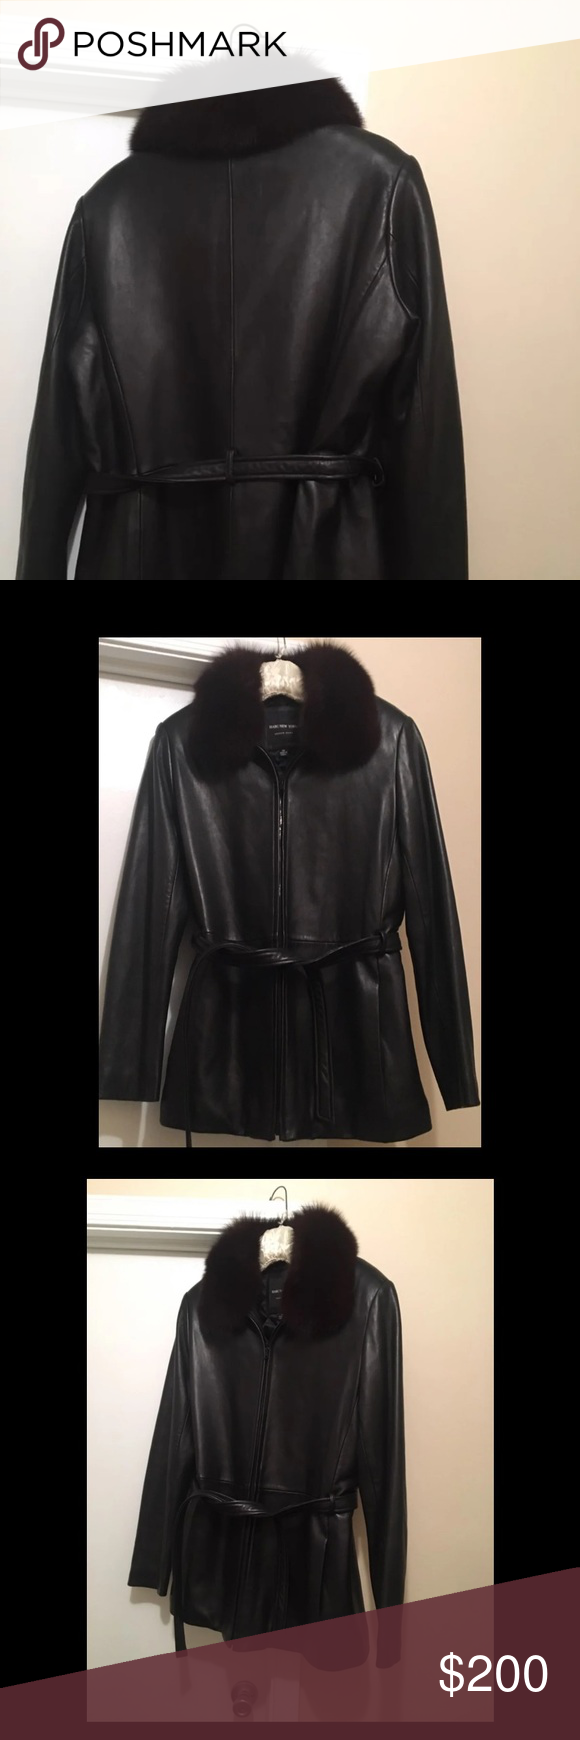 Andrew Marc Leather and Fox Fur Jacket Fox fur jacket